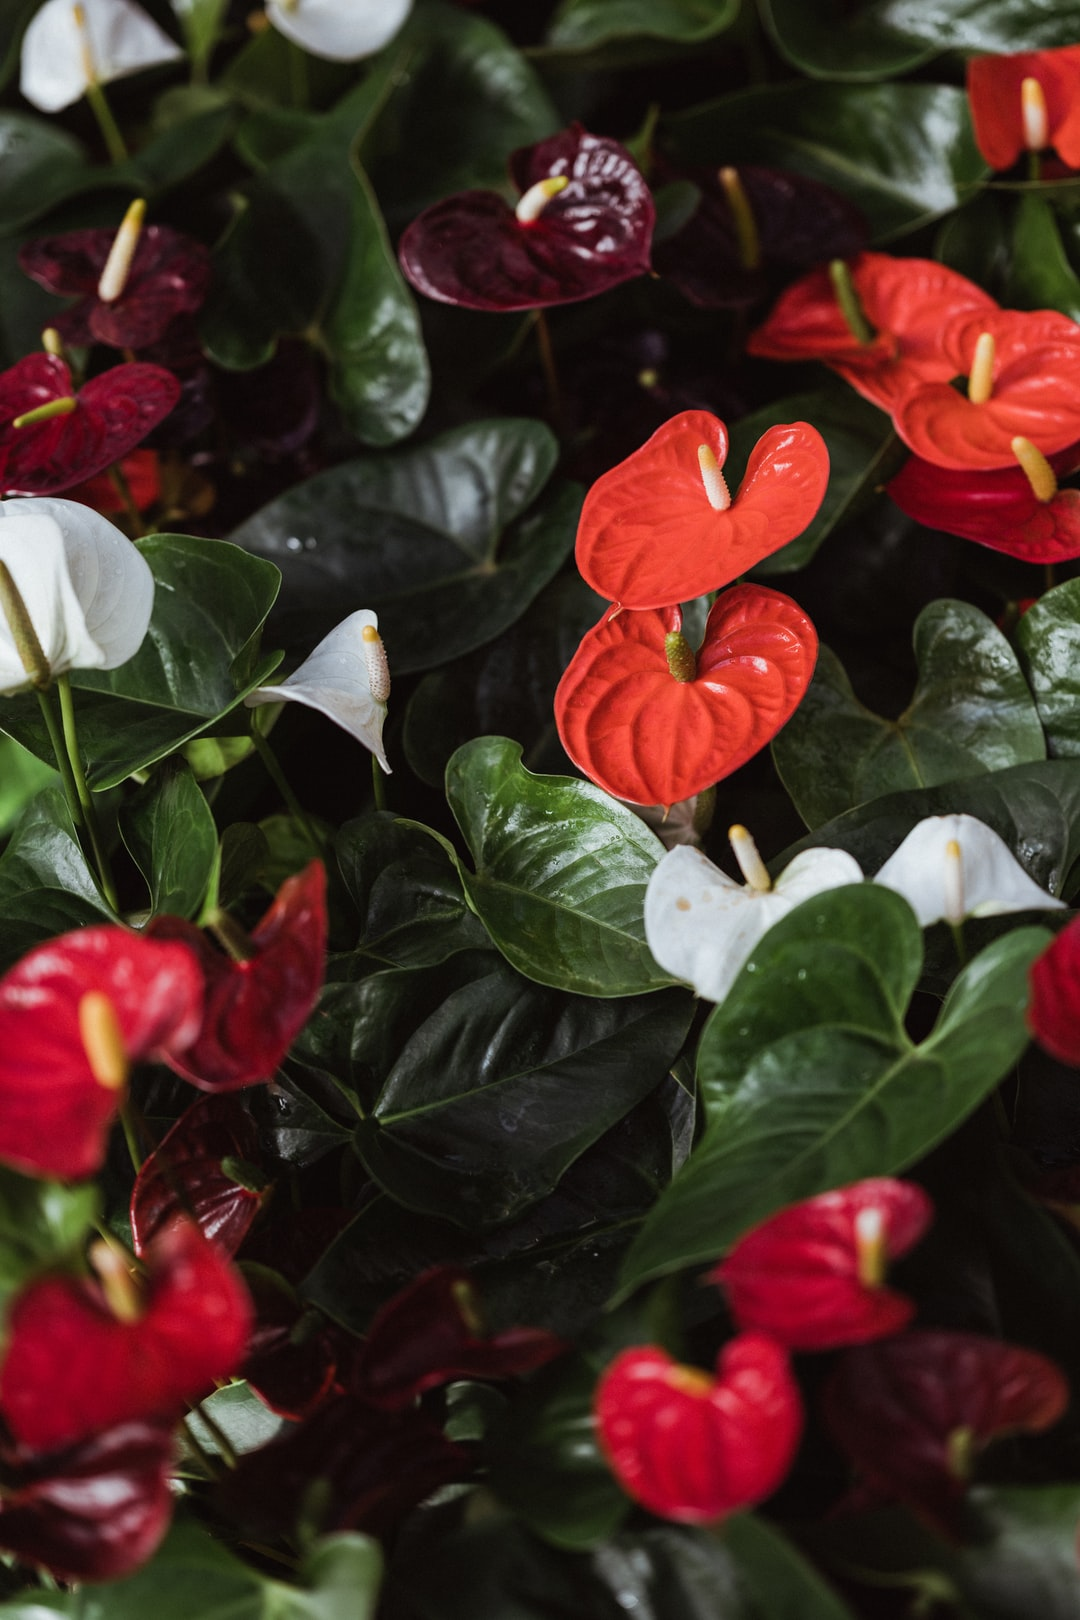 Red peace lily